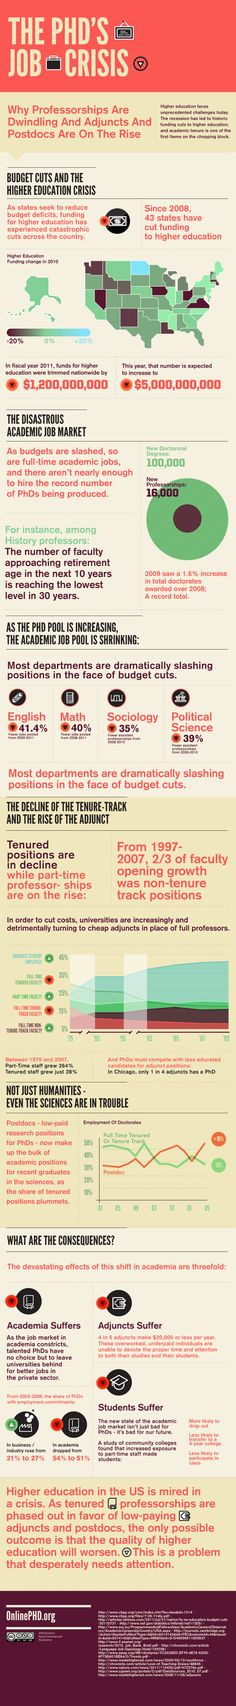 How Are Budget Cuts Affecting Higher Education Academic Jobs? #highered #infographic